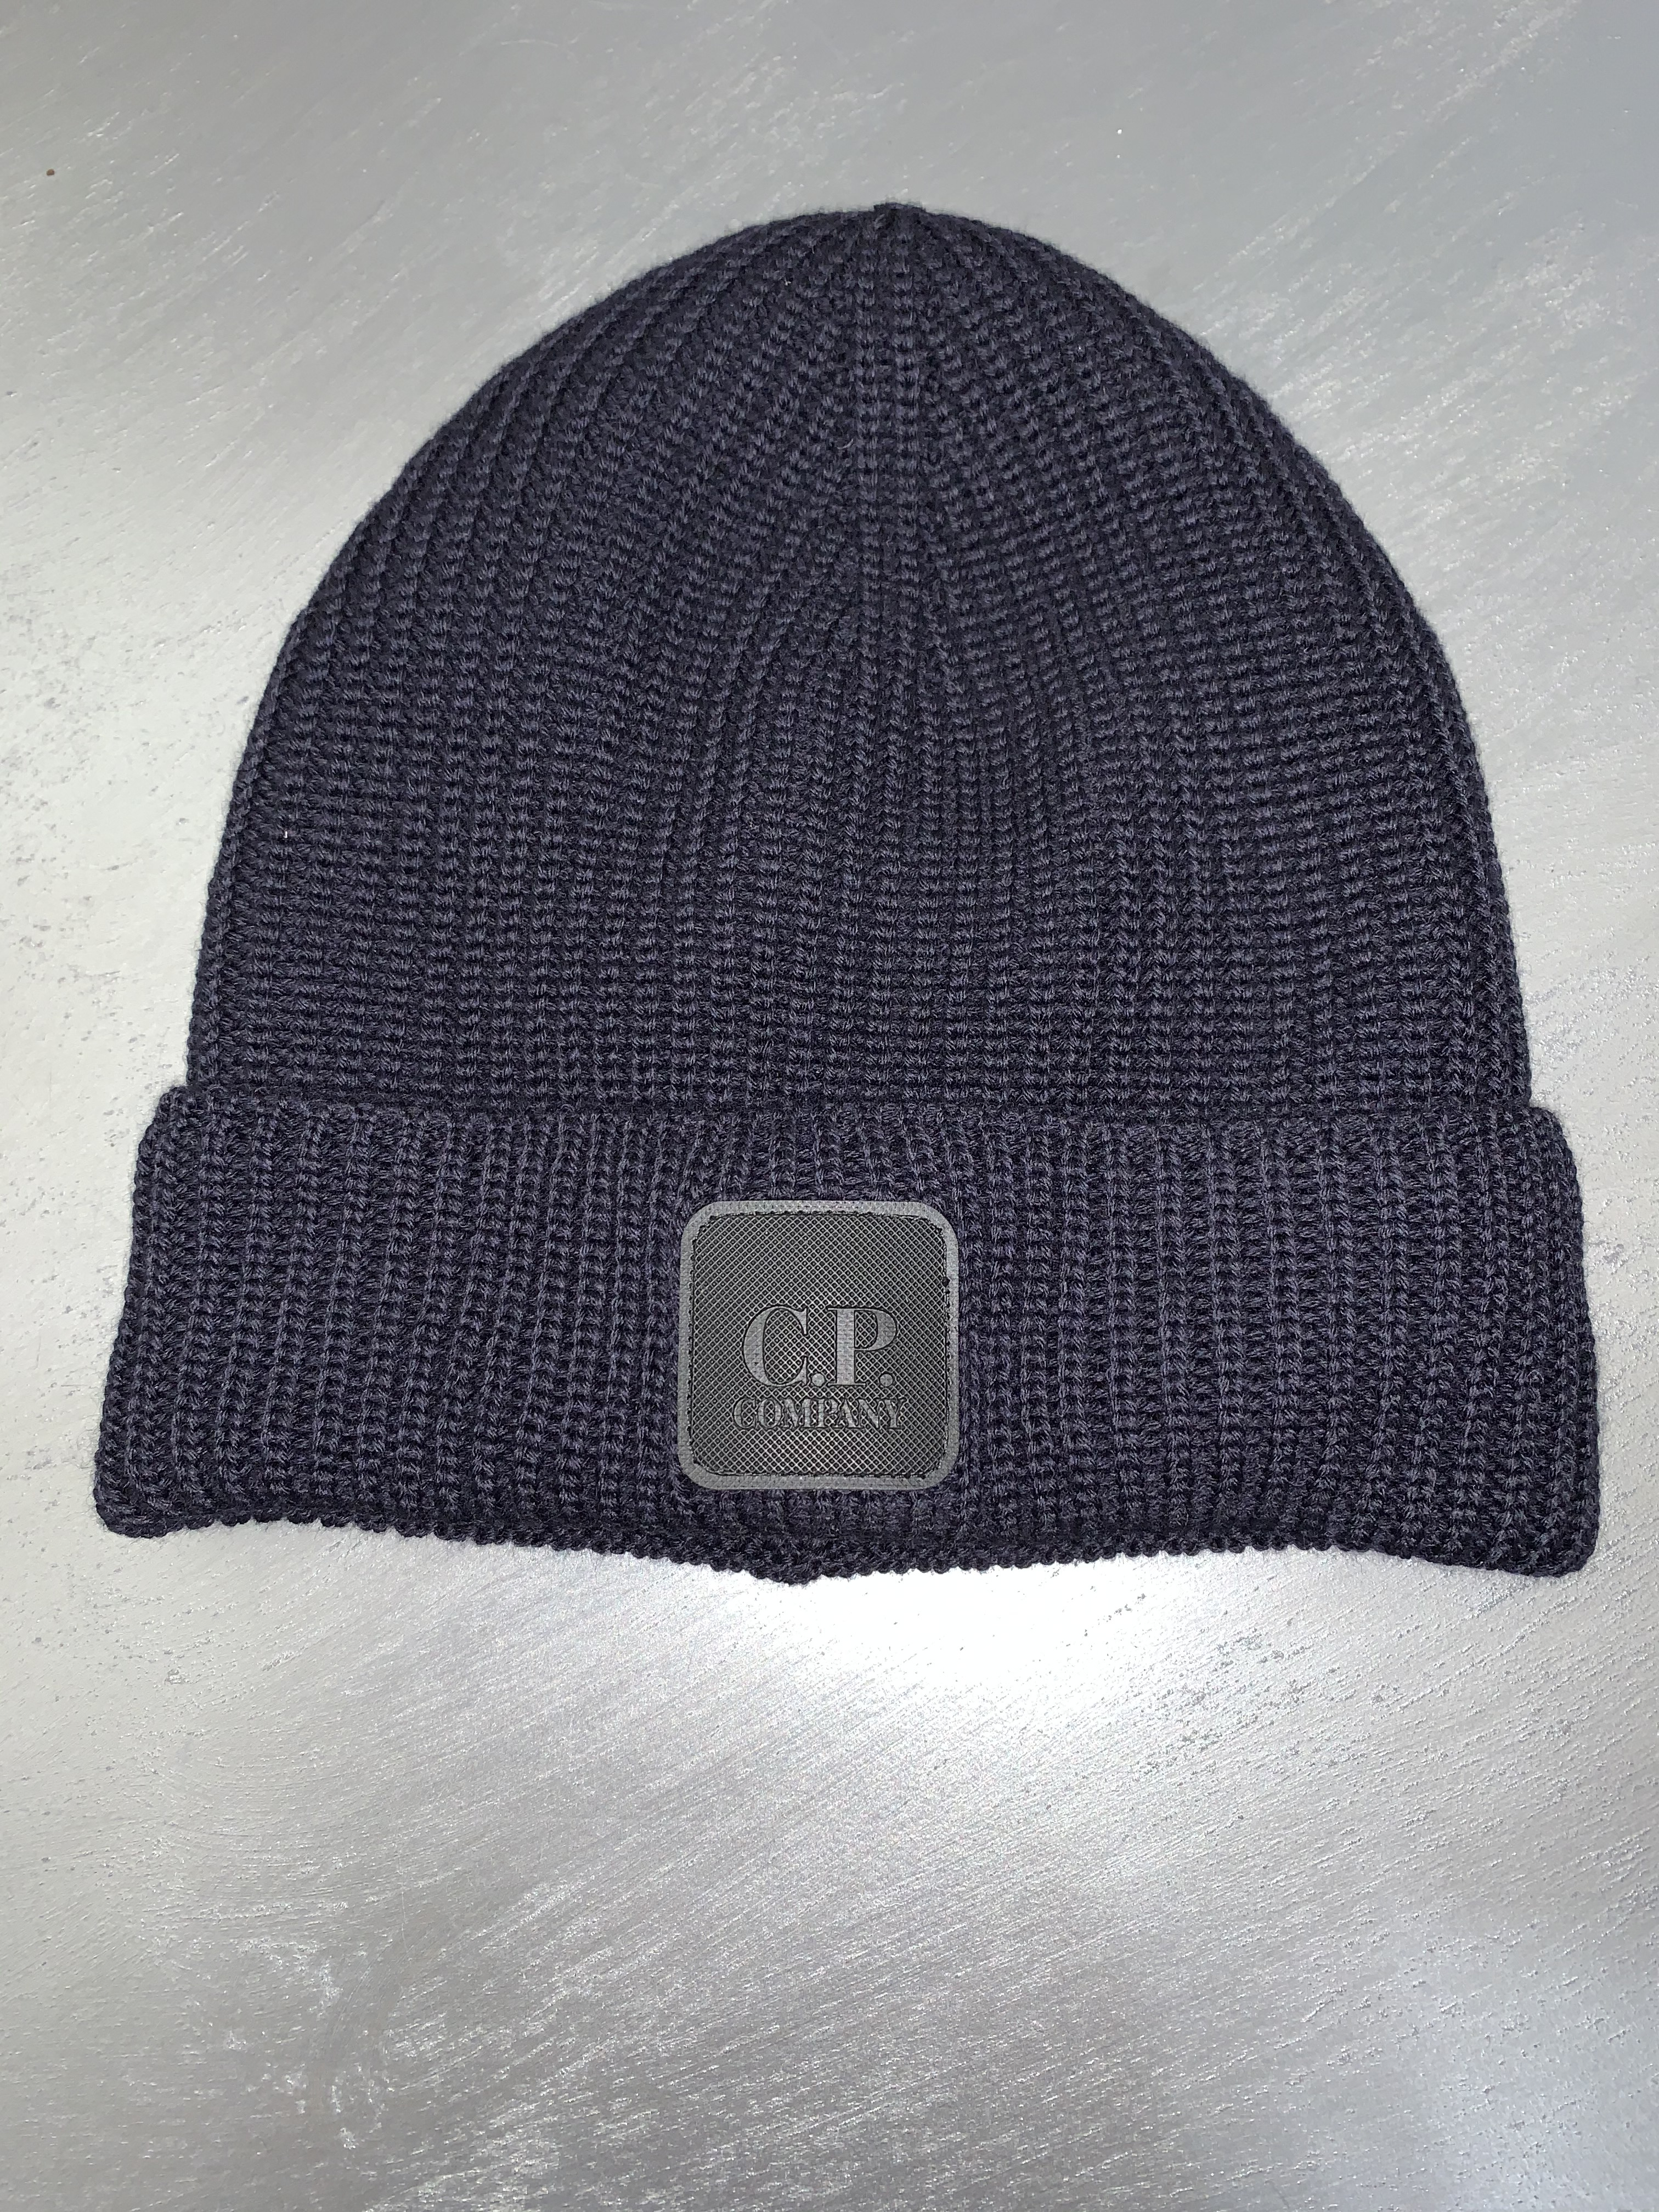 SHOPPING ON LINE CP COMPANY BERRETTO MERINO WOOL  BADGE BEANIE NEW COLLECTION MEN FALL WINTER 2020/2021